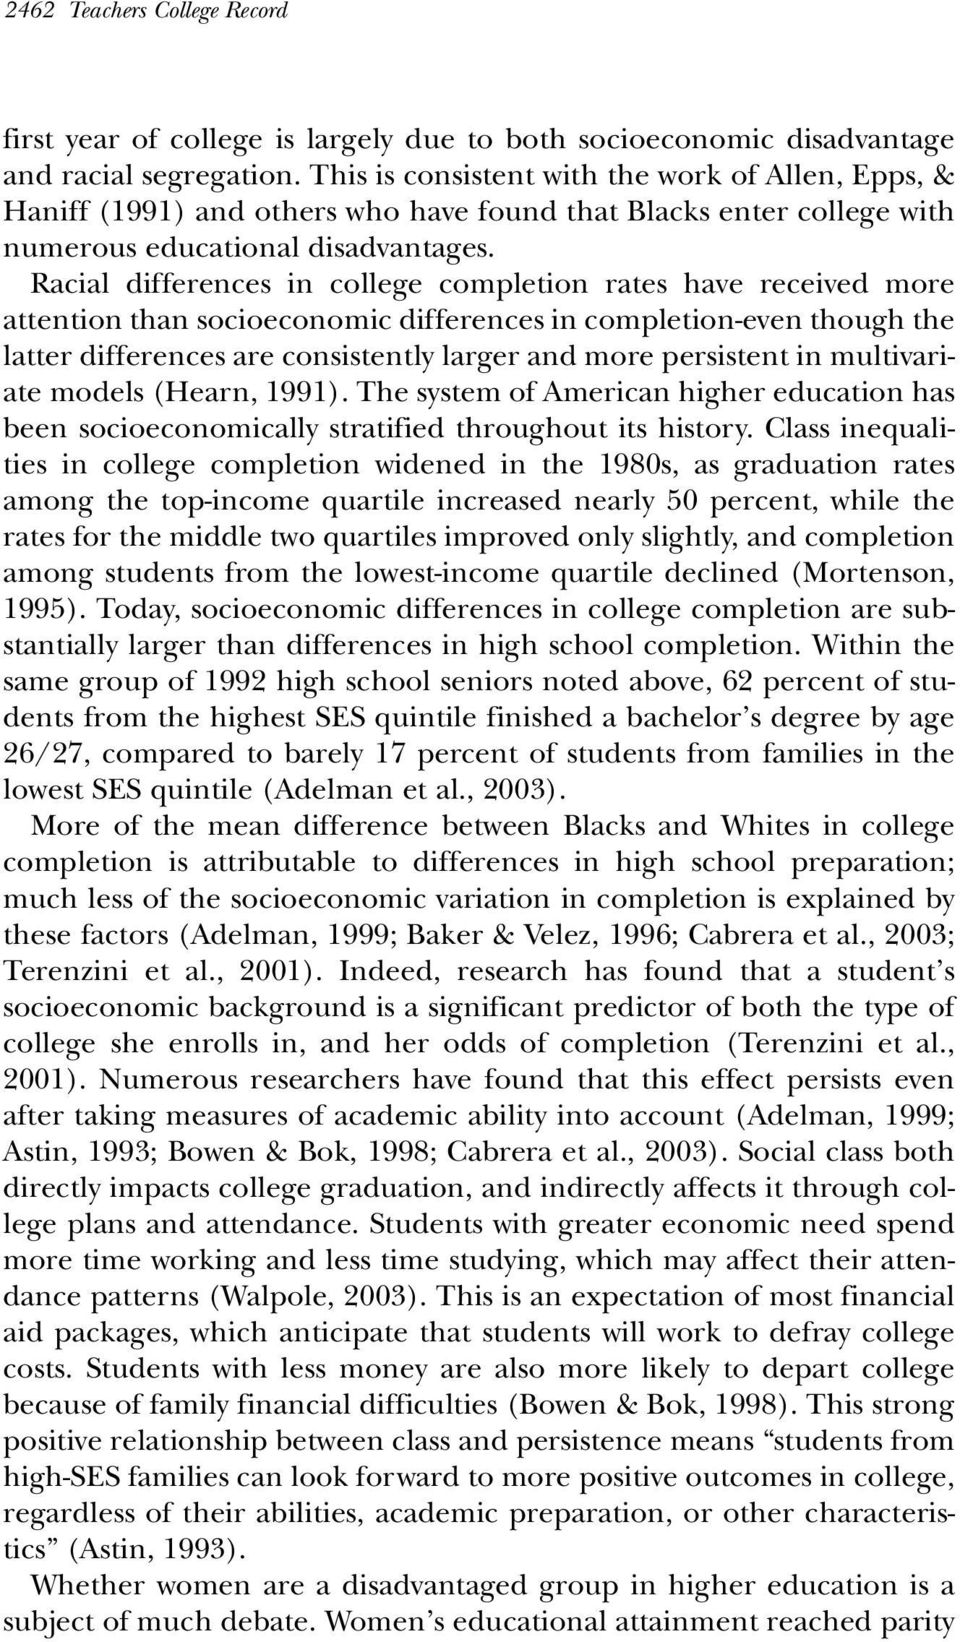 Racial differences in college completion rates have received more attention than socioeconomic differences in completion-even though the latter differences are consistently larger and more persistent